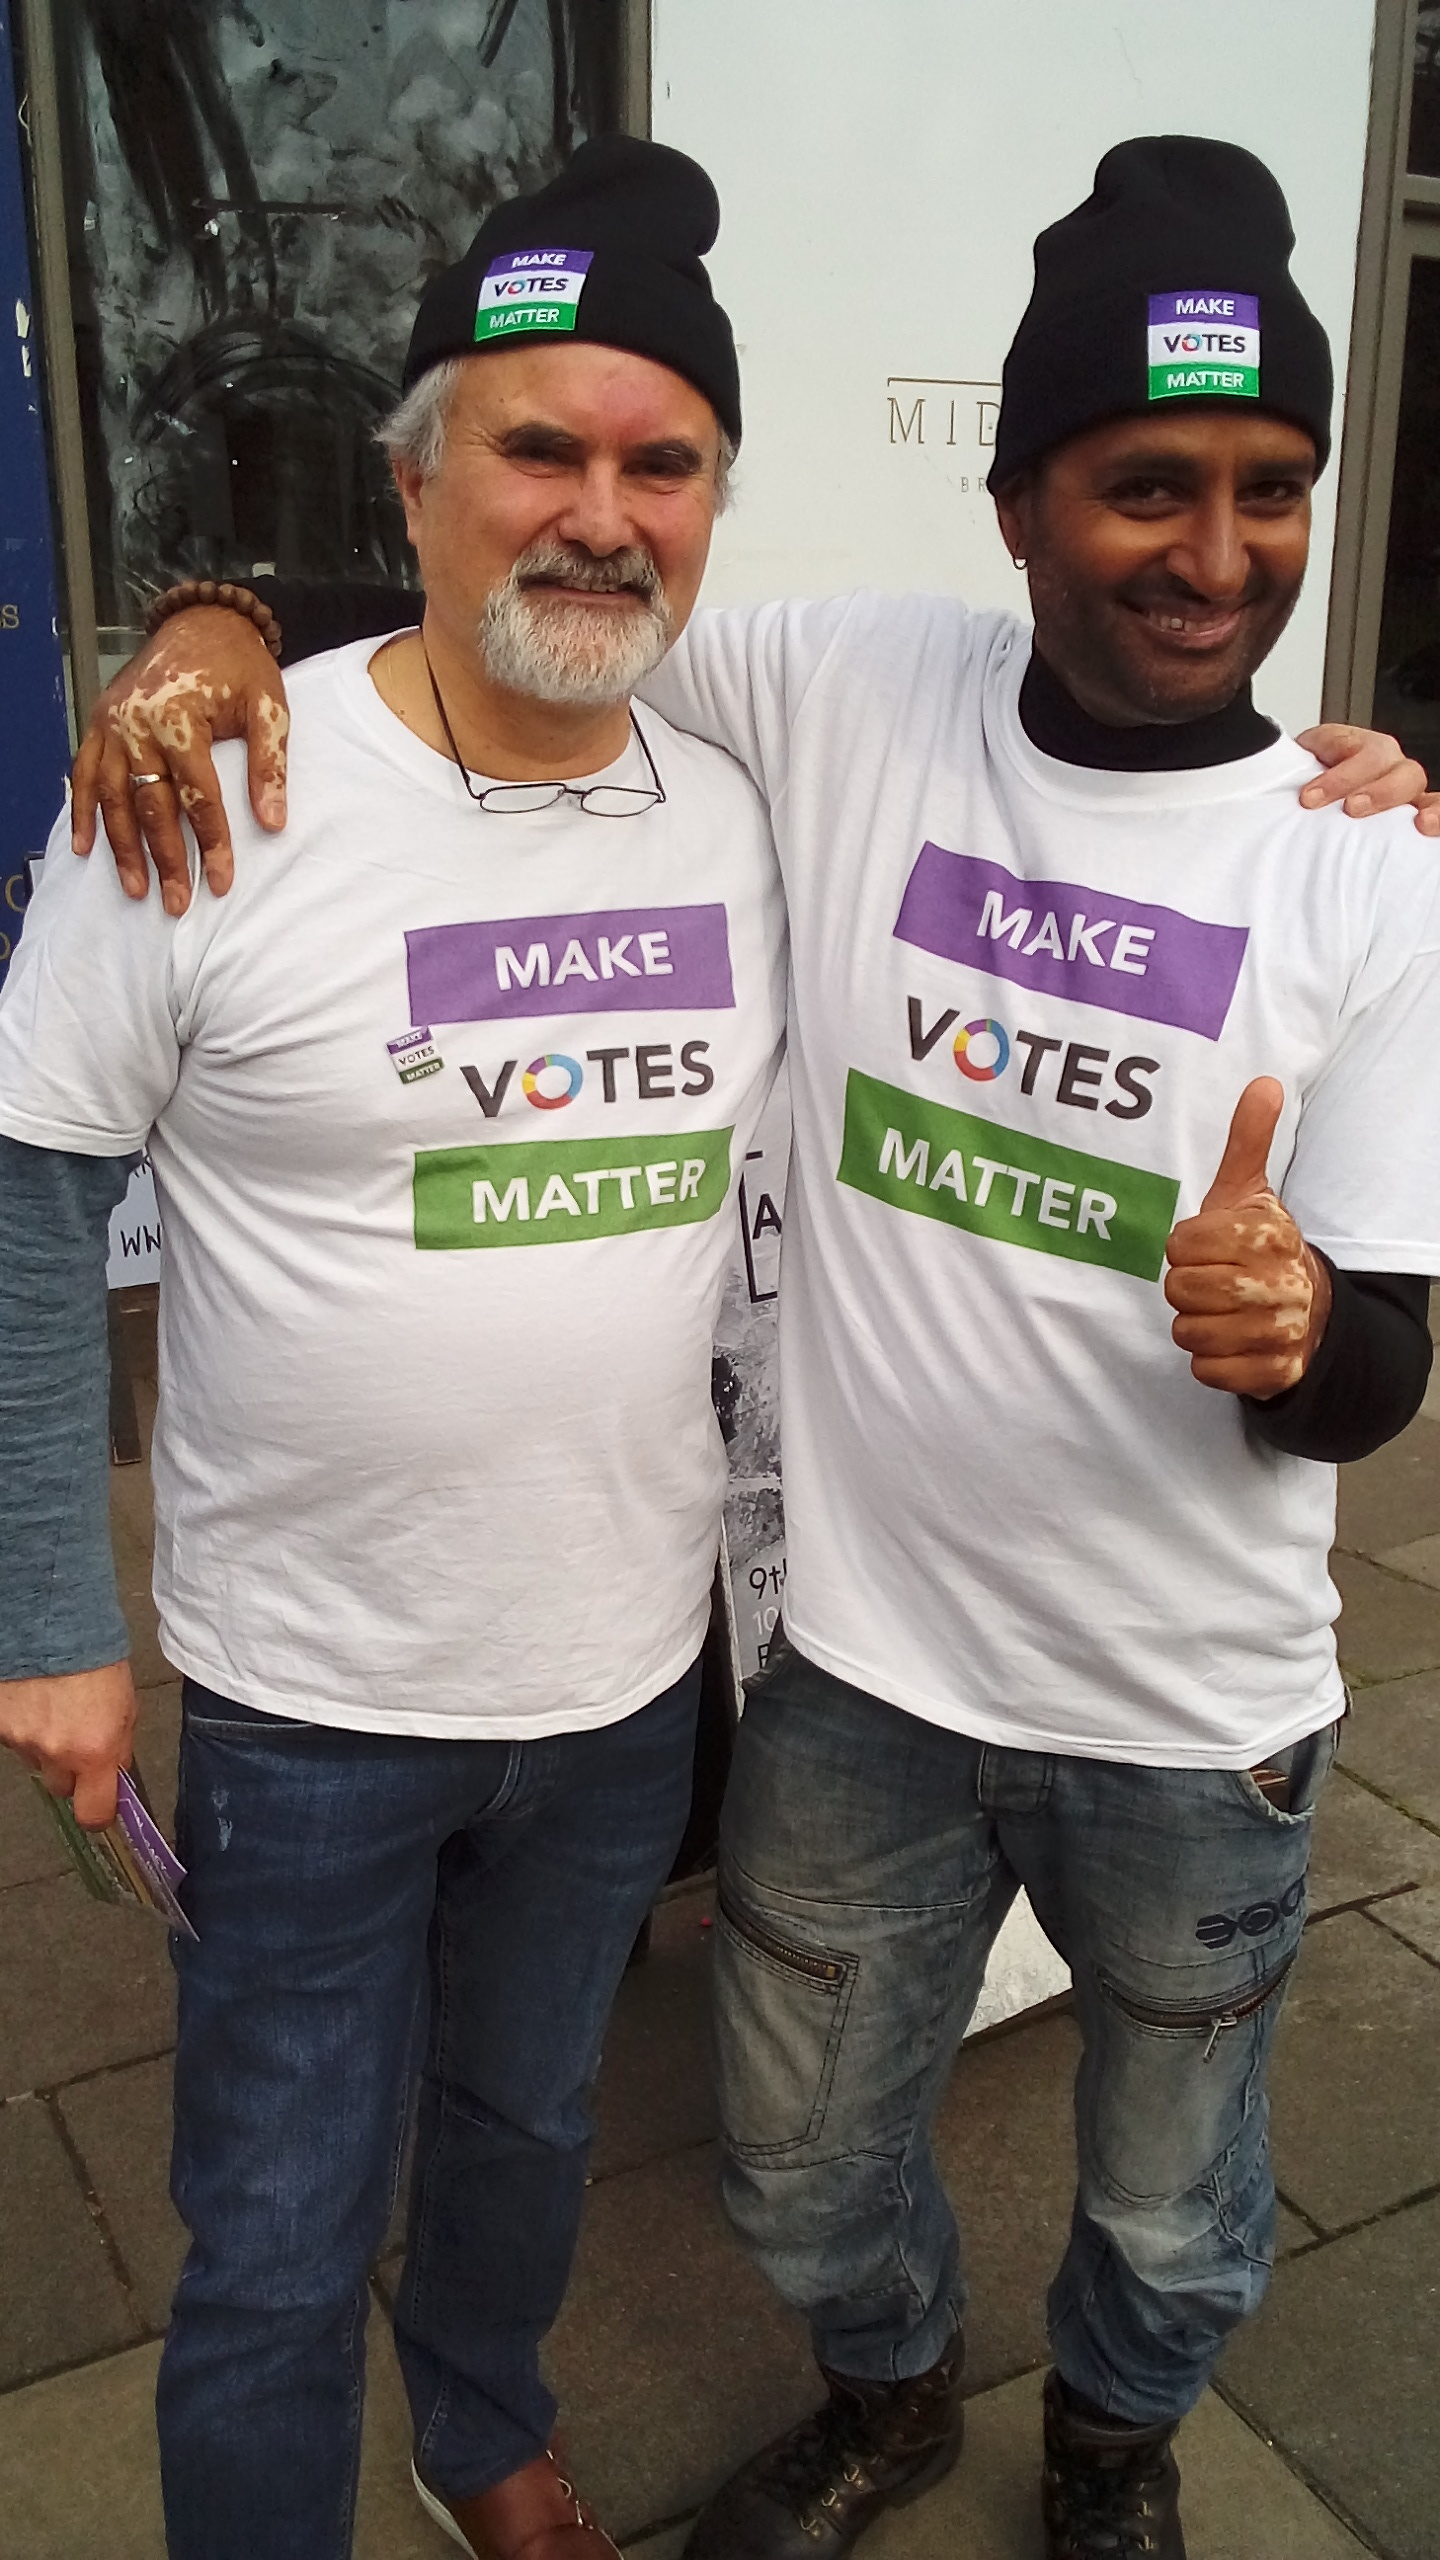 MVM North London out campaigning for PR